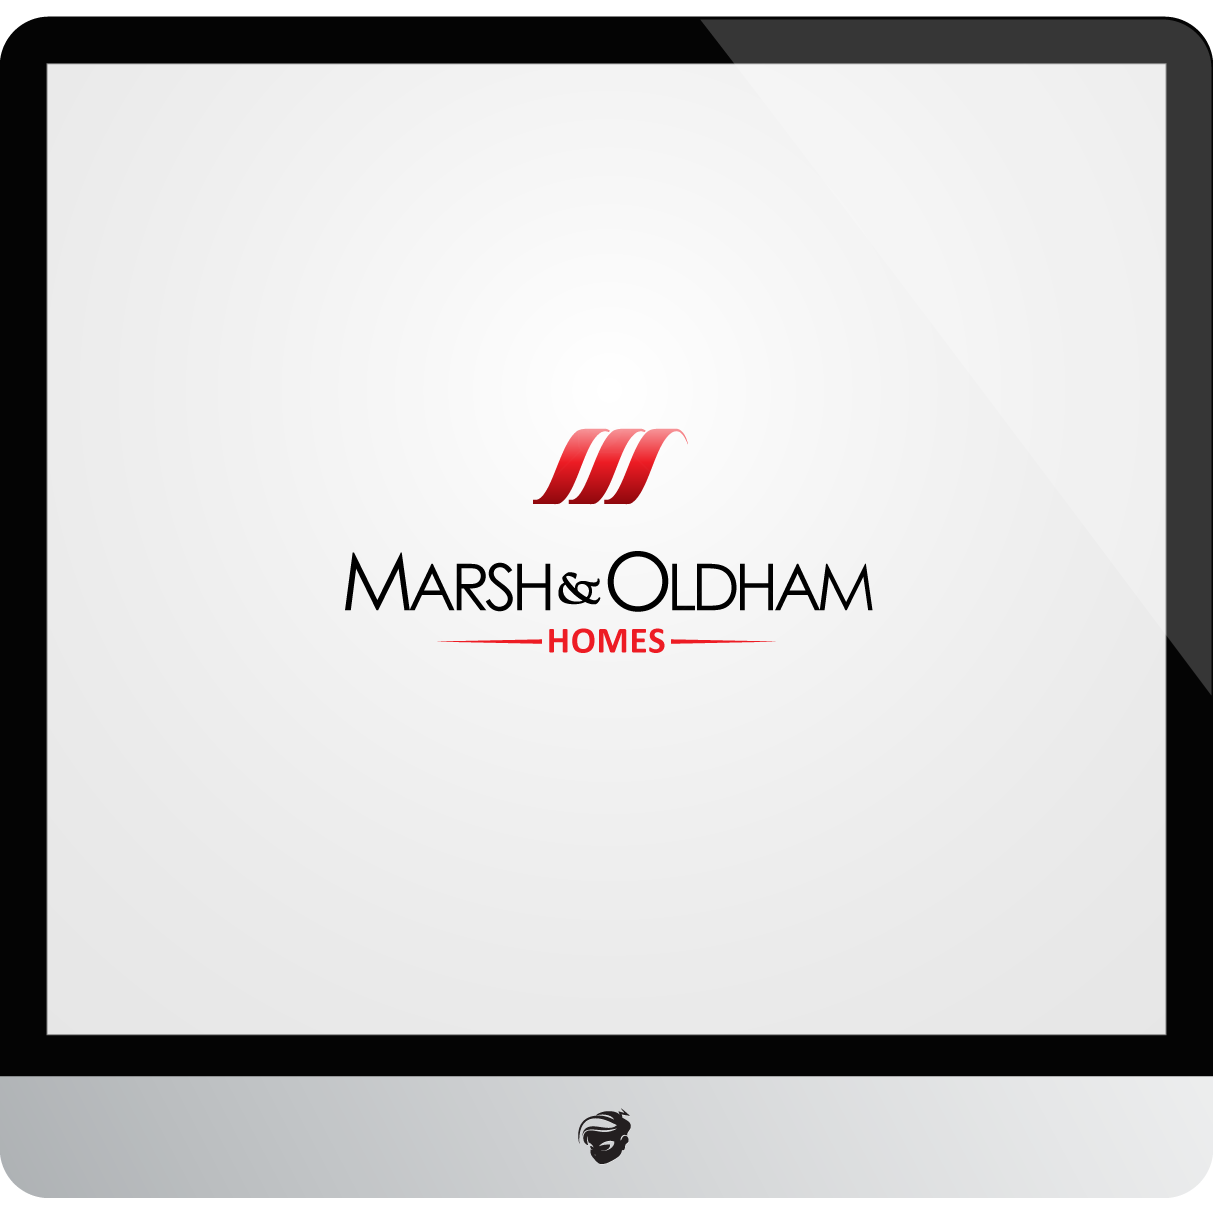 Logo Design by zesthar - Entry No. 141 in the Logo Design Contest Artistic Logo Design for Marsh & Oldham Homes.